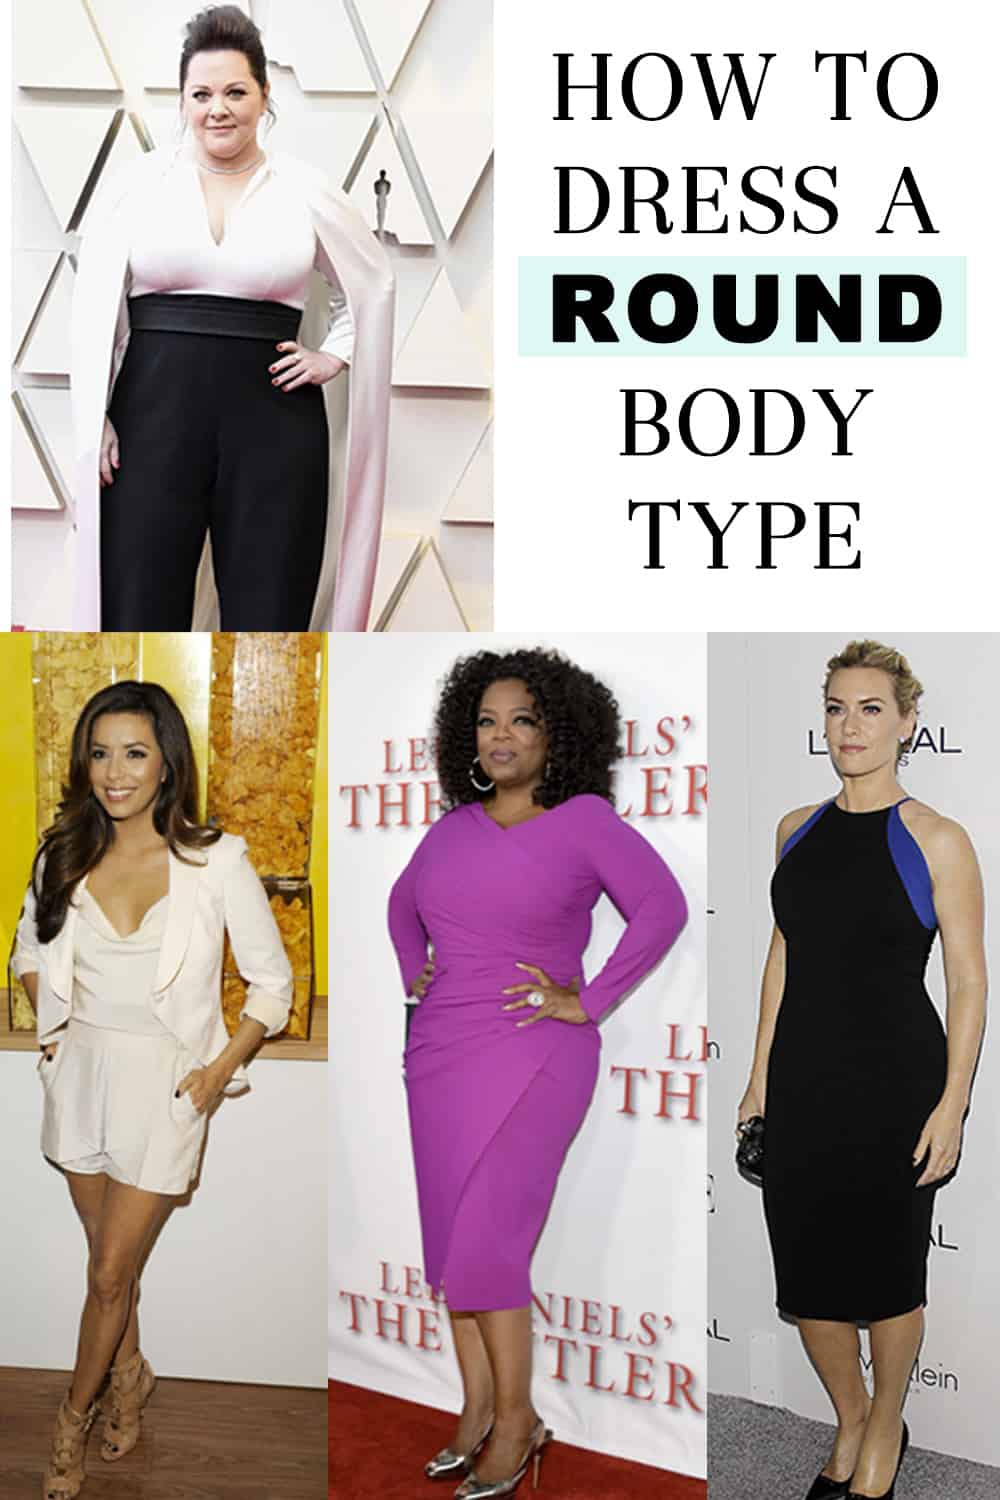 How to Dress a Round Body Type